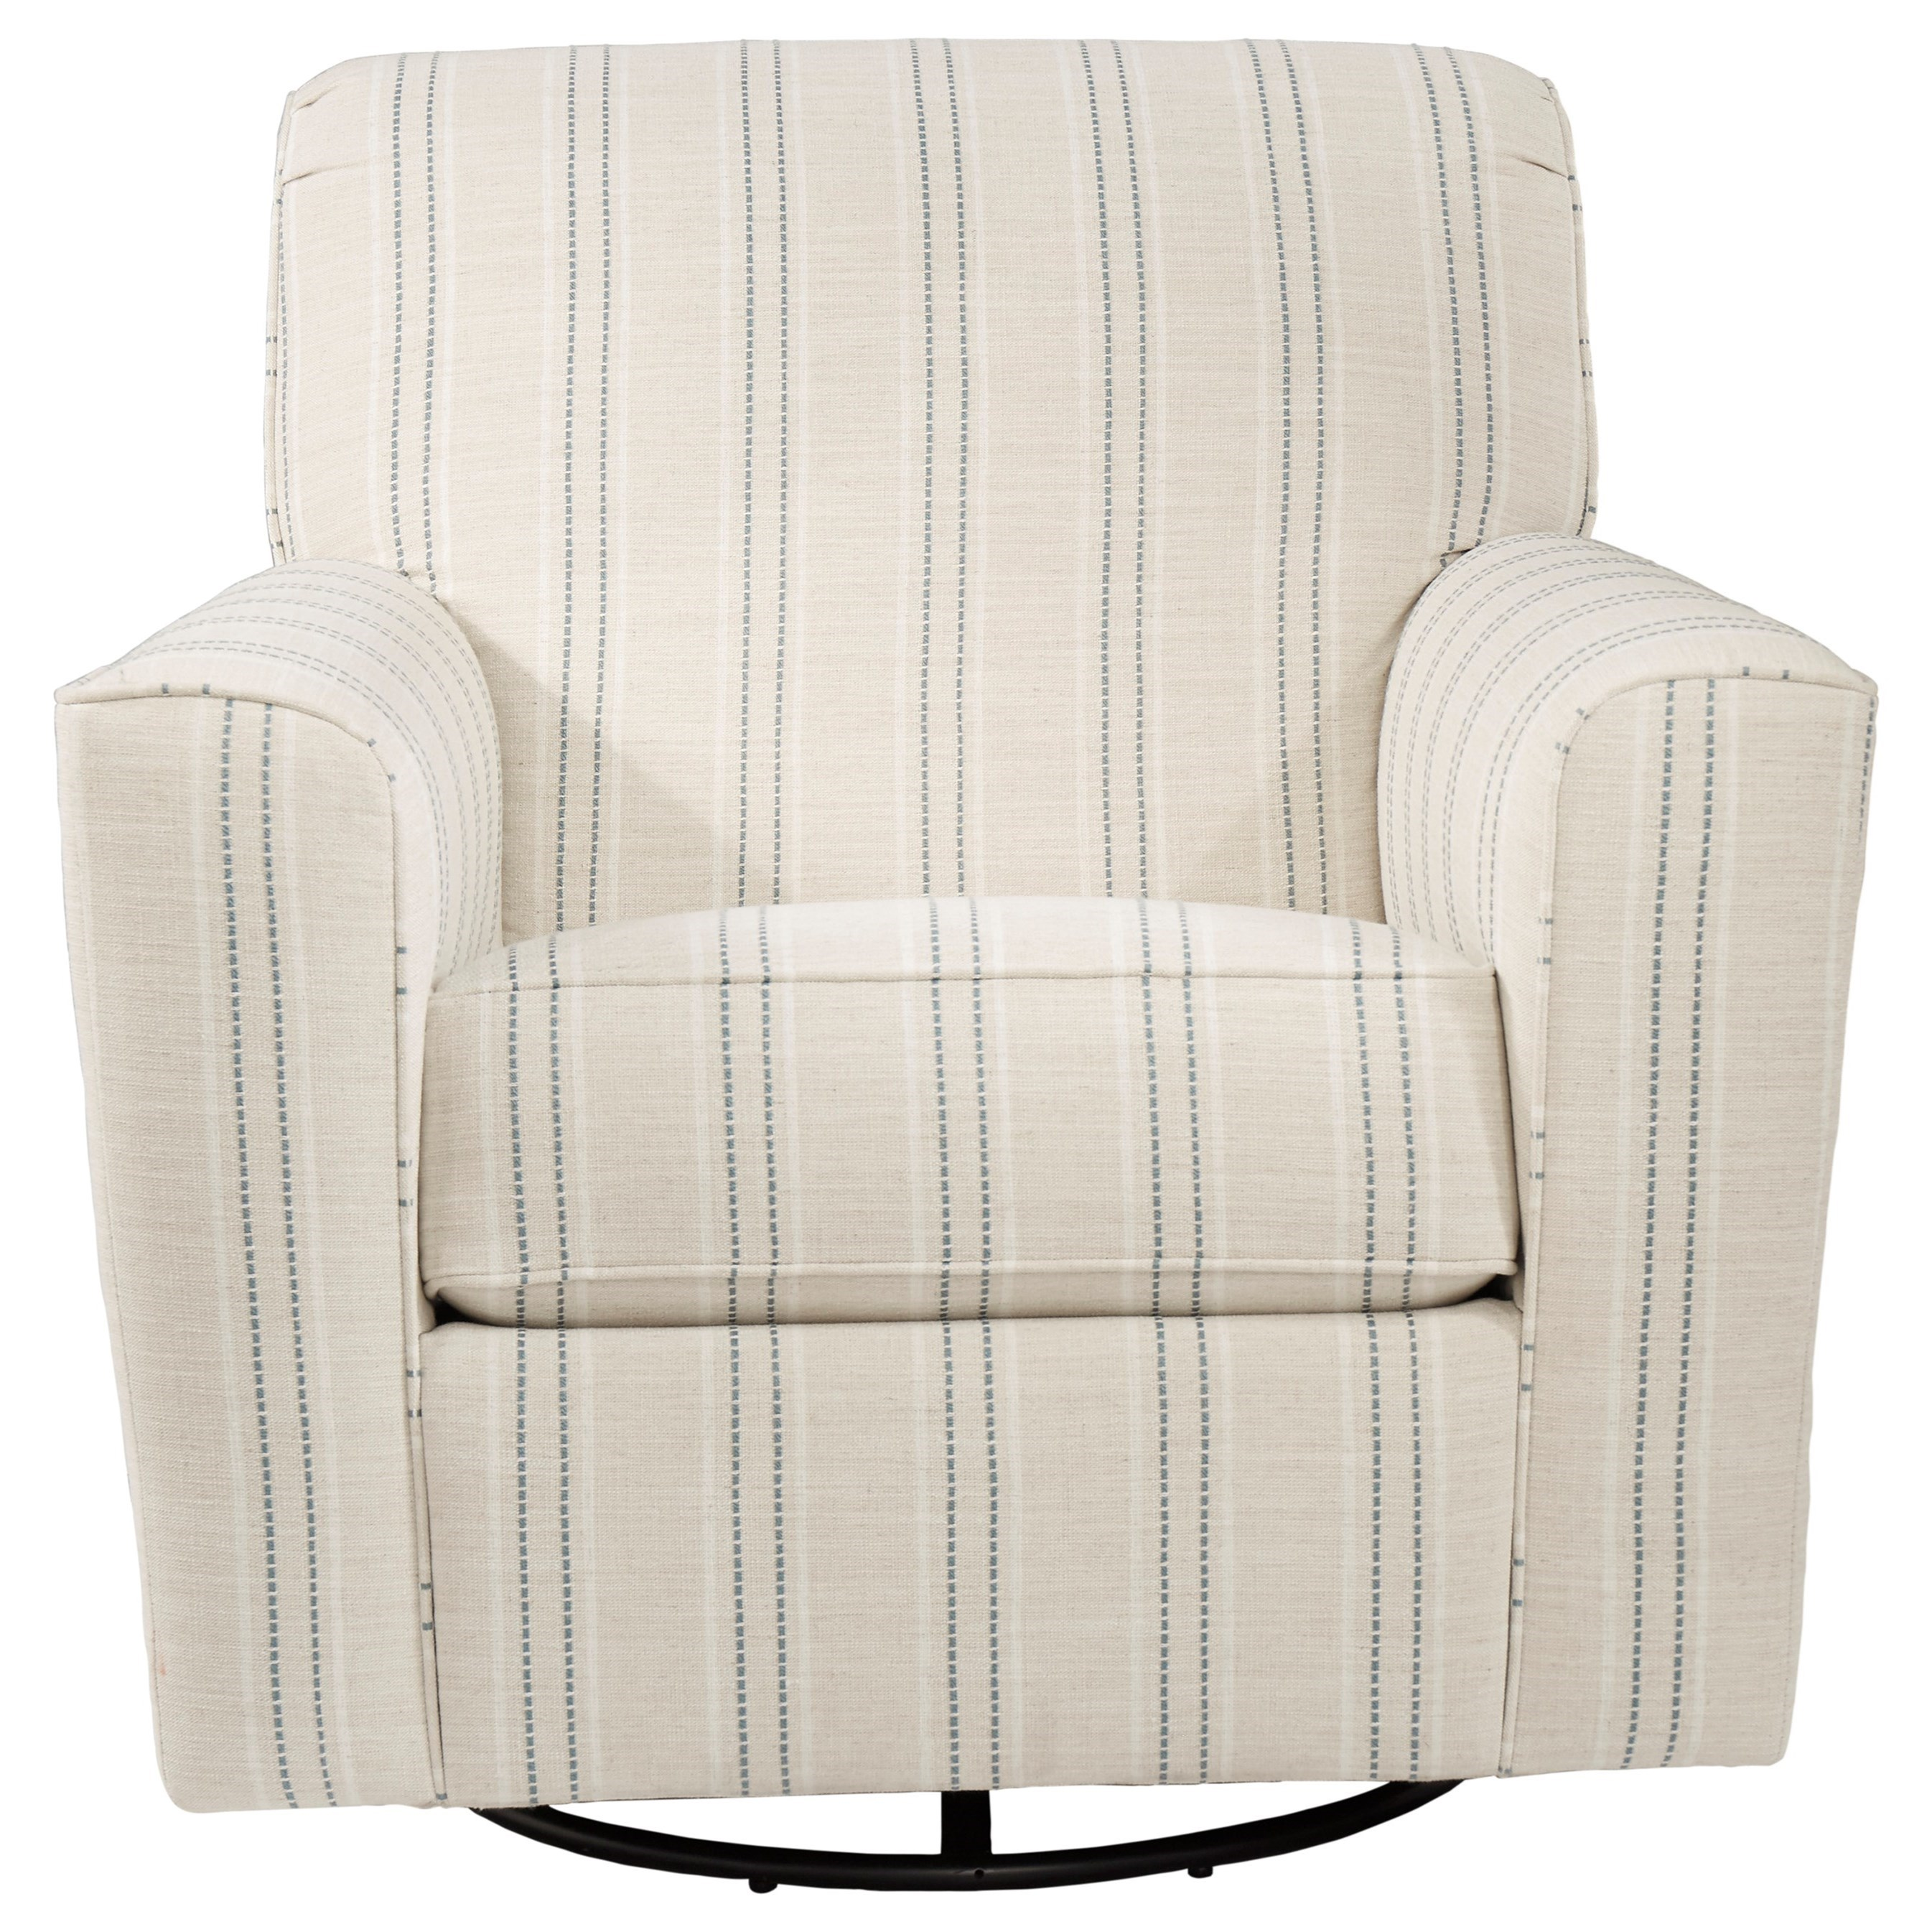 Alandari Swivel Glider Accent Chair by Michael Alan Select at Michael Alan Furniture & Design